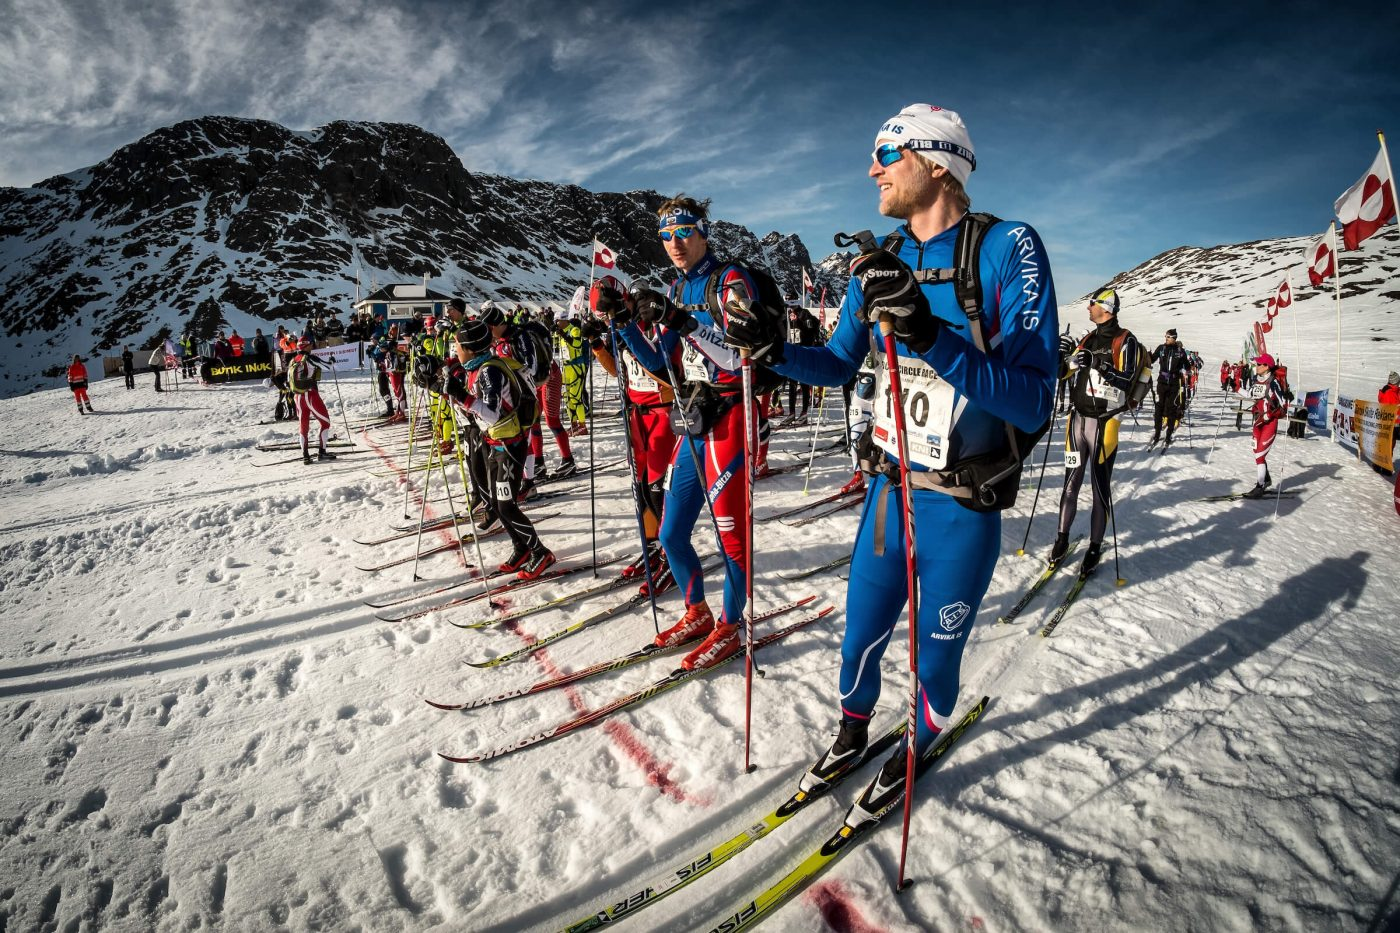 Skiers preparing for the start of day two of the Arctic Circle Race. Photo by Mads Pihl, Visit Greenland